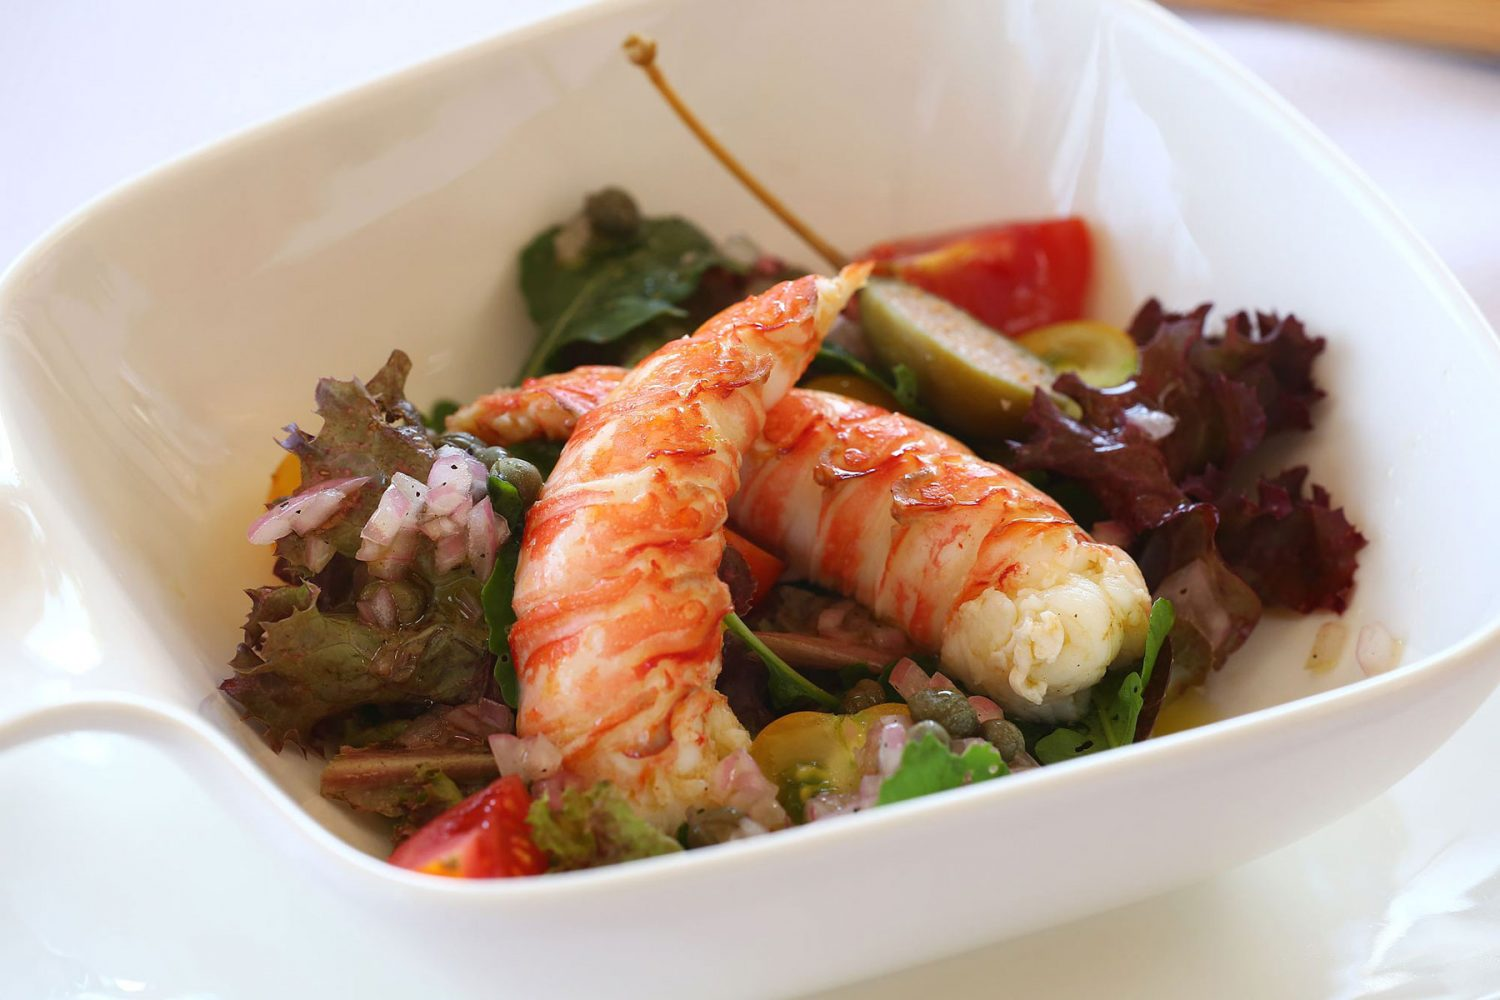 Archipelago Tours Exclusive Charter photo of a dish with lobsters